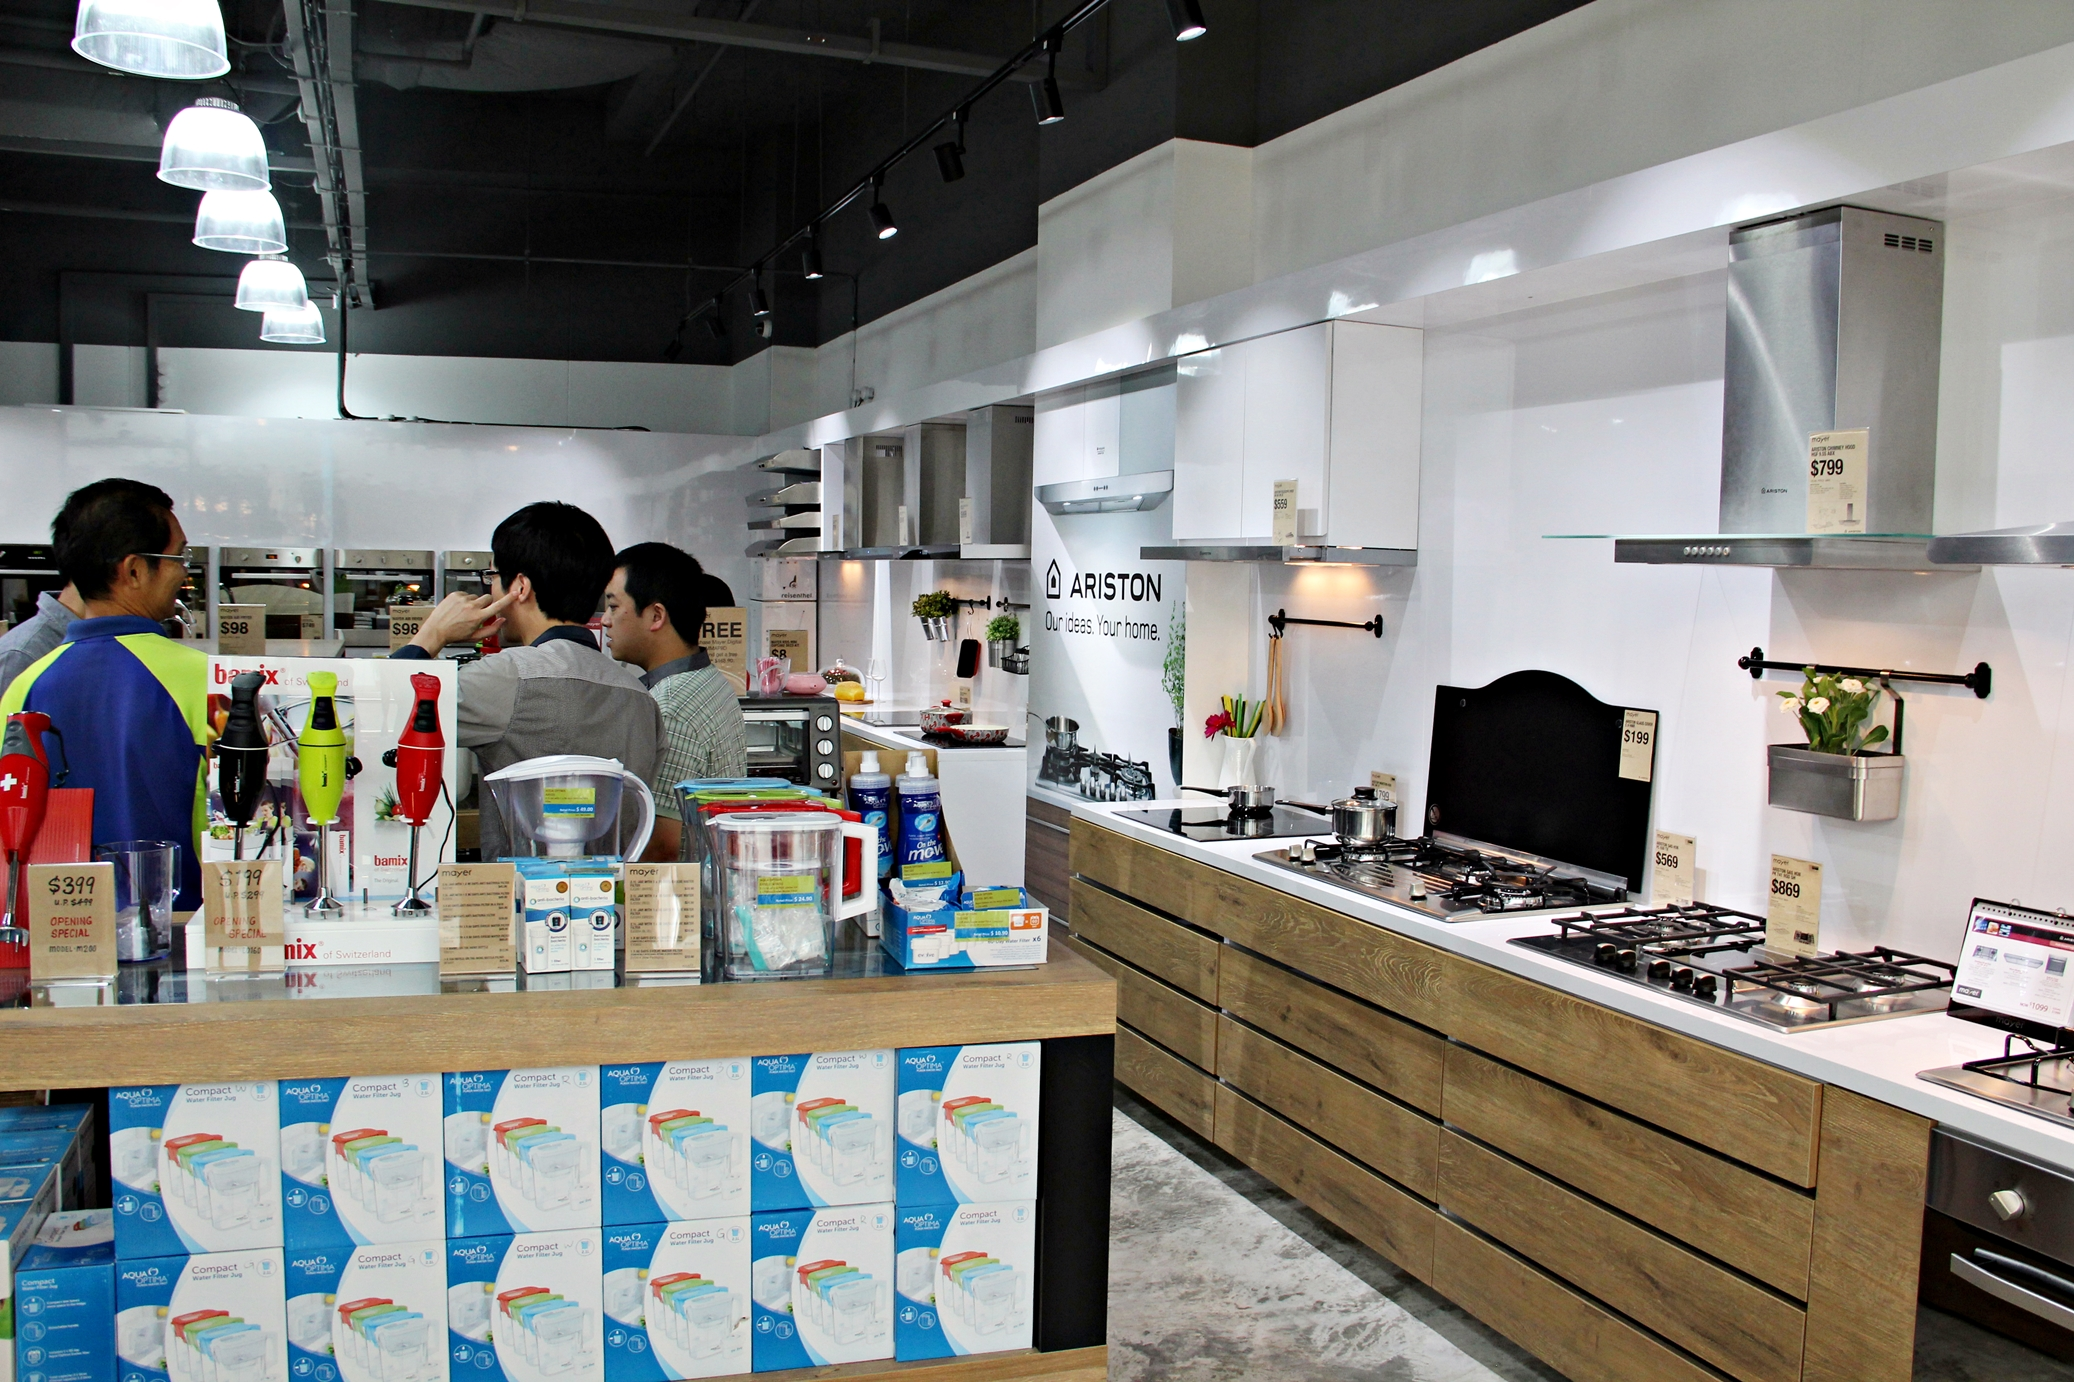 Uncategorized Kitchen Appliance Showroom mayer new showroom at aperia mall upon entering you can really see a wide variety of kitchen appliances its great place to shop for their products when are looking for